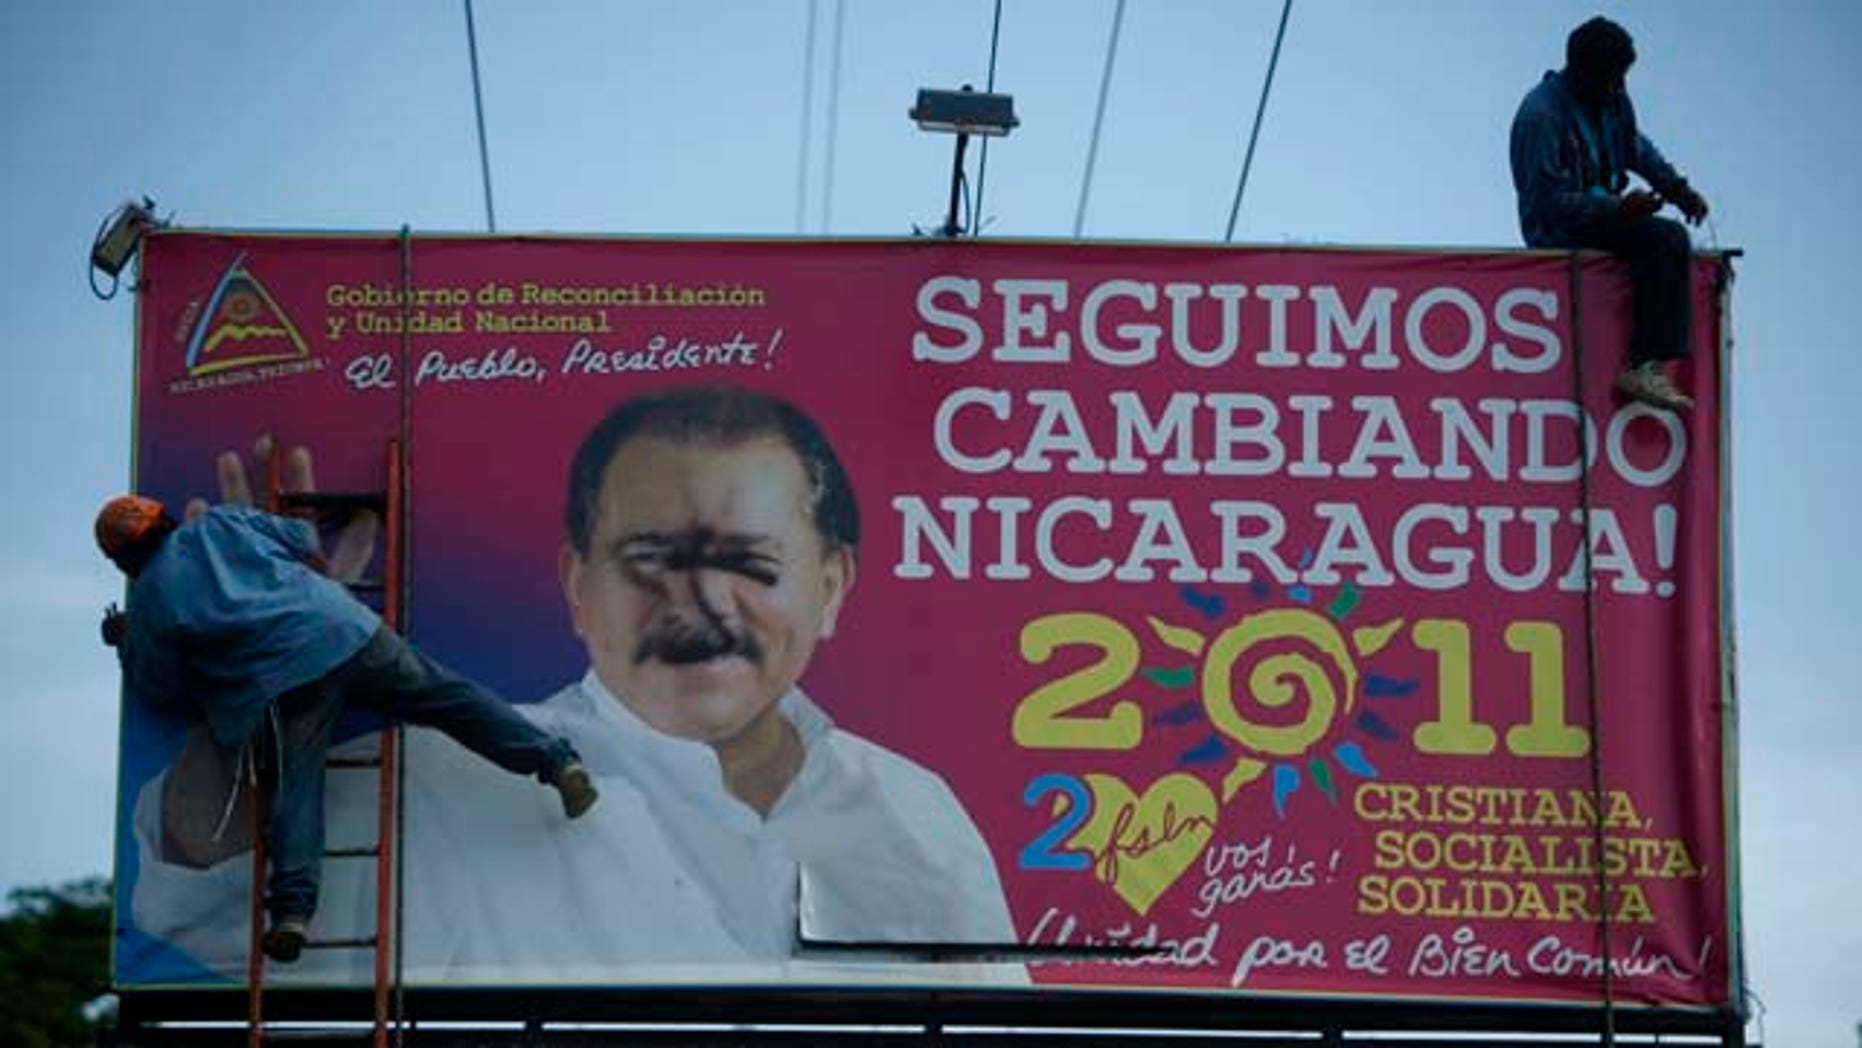 "Workers remove a billboard with political propaganda supporting Nicaragua's current President Daniel Ortega that reads in Spanish ""We keep changing Nicaragua: Christian, socialist, with solidarity"" in Managua, Nicaragua, Thursday, Aug. 18, 2011. Religious processions and chants have become common in the re-election campaign rallies of leftist Nicaraguan President Daniel Ortega, who is highlighting his Christianity in his latest bid for presidency. (AP Photo/Esteban Felix)"